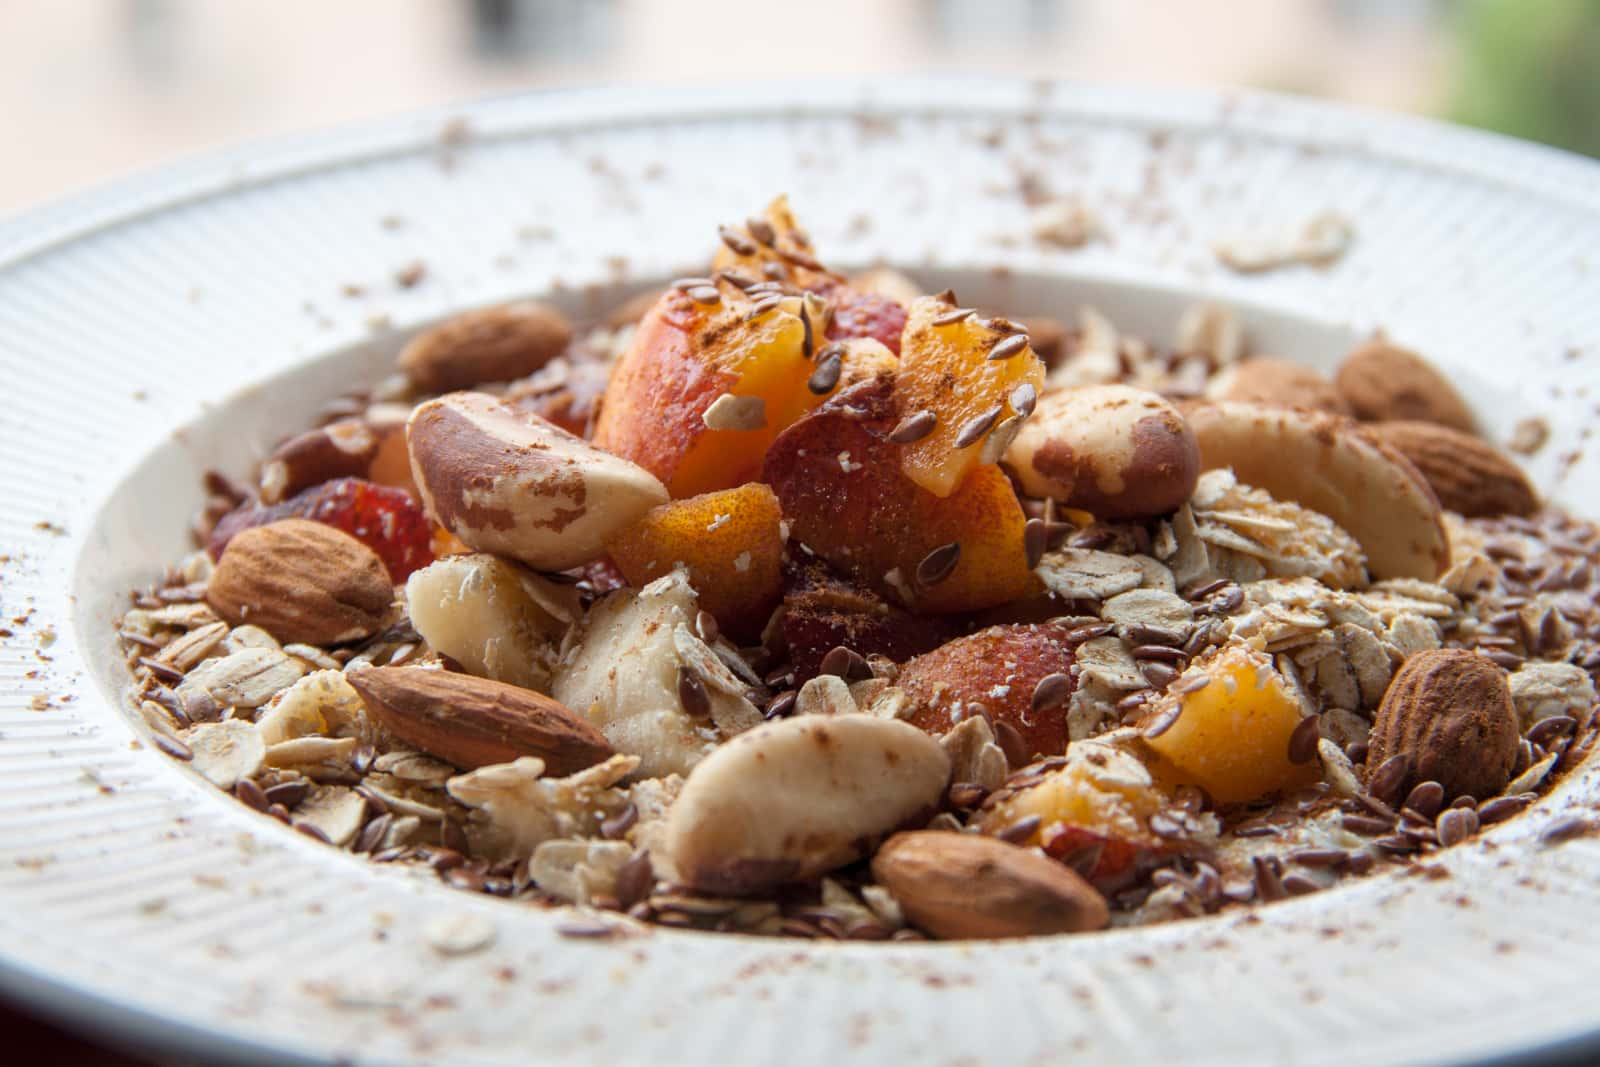 A close up of oats with yoghurt, fruit and nuts